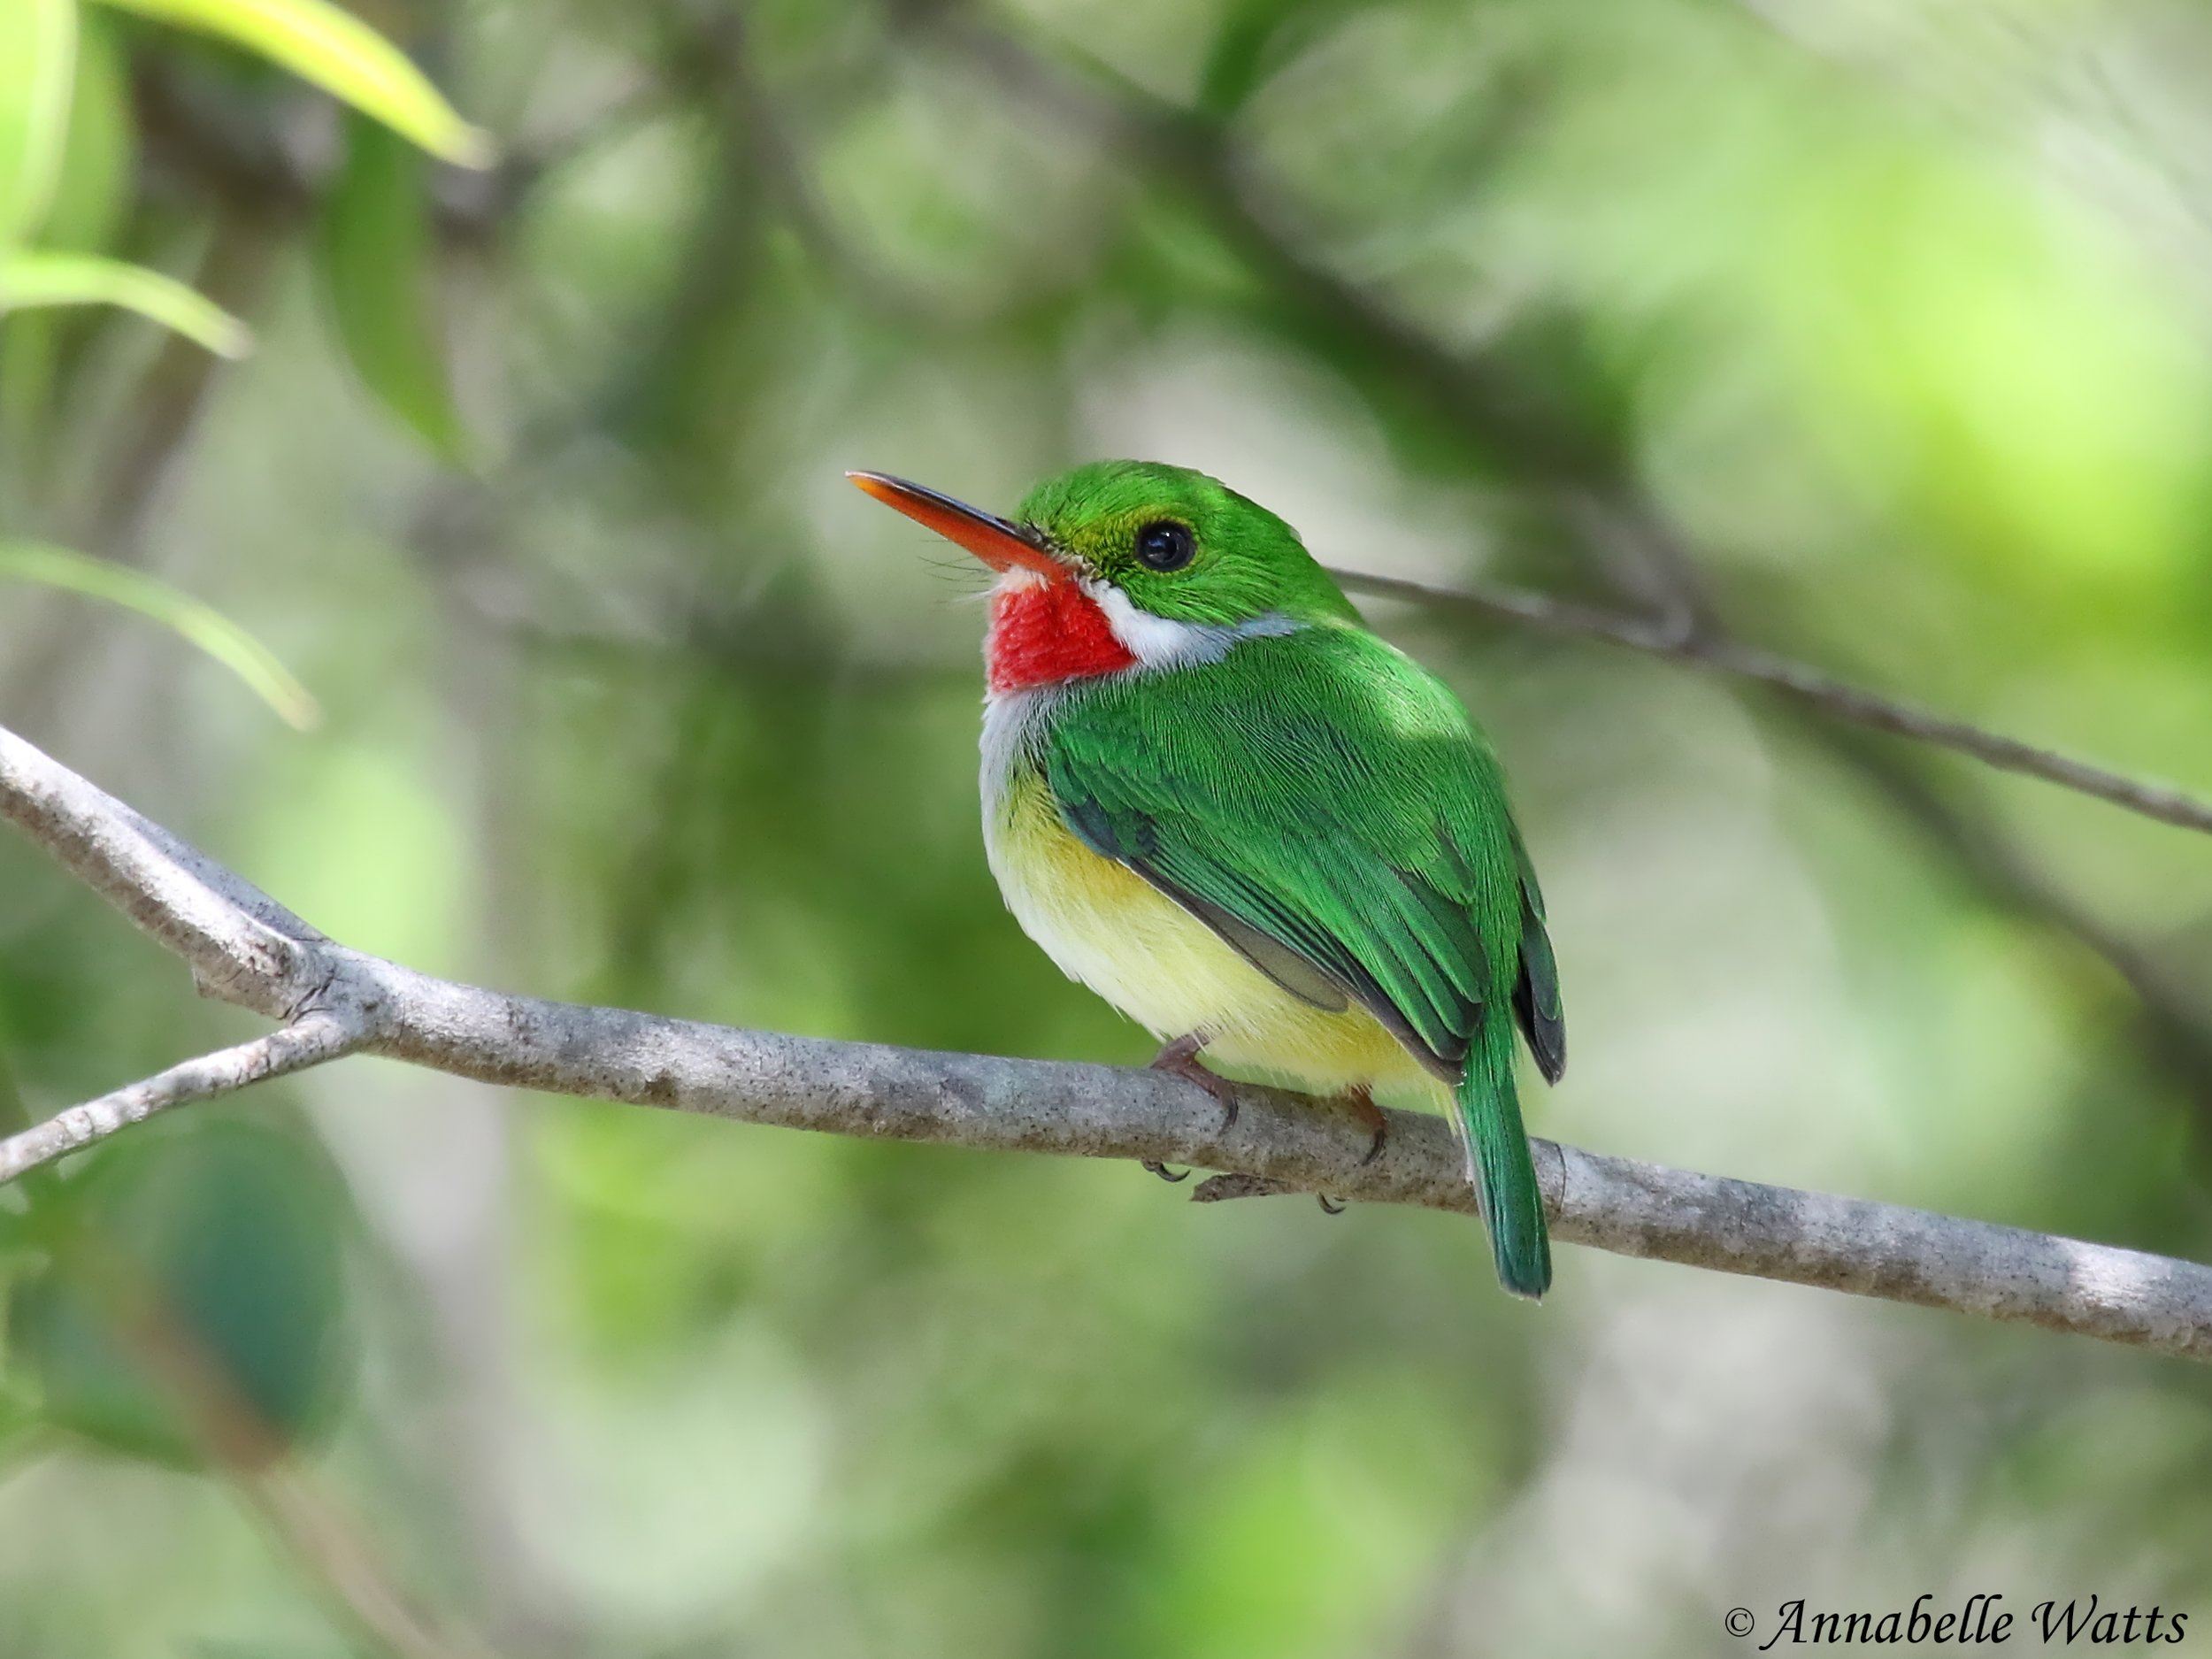 Puerto Rican Tody by Annabelle Watts